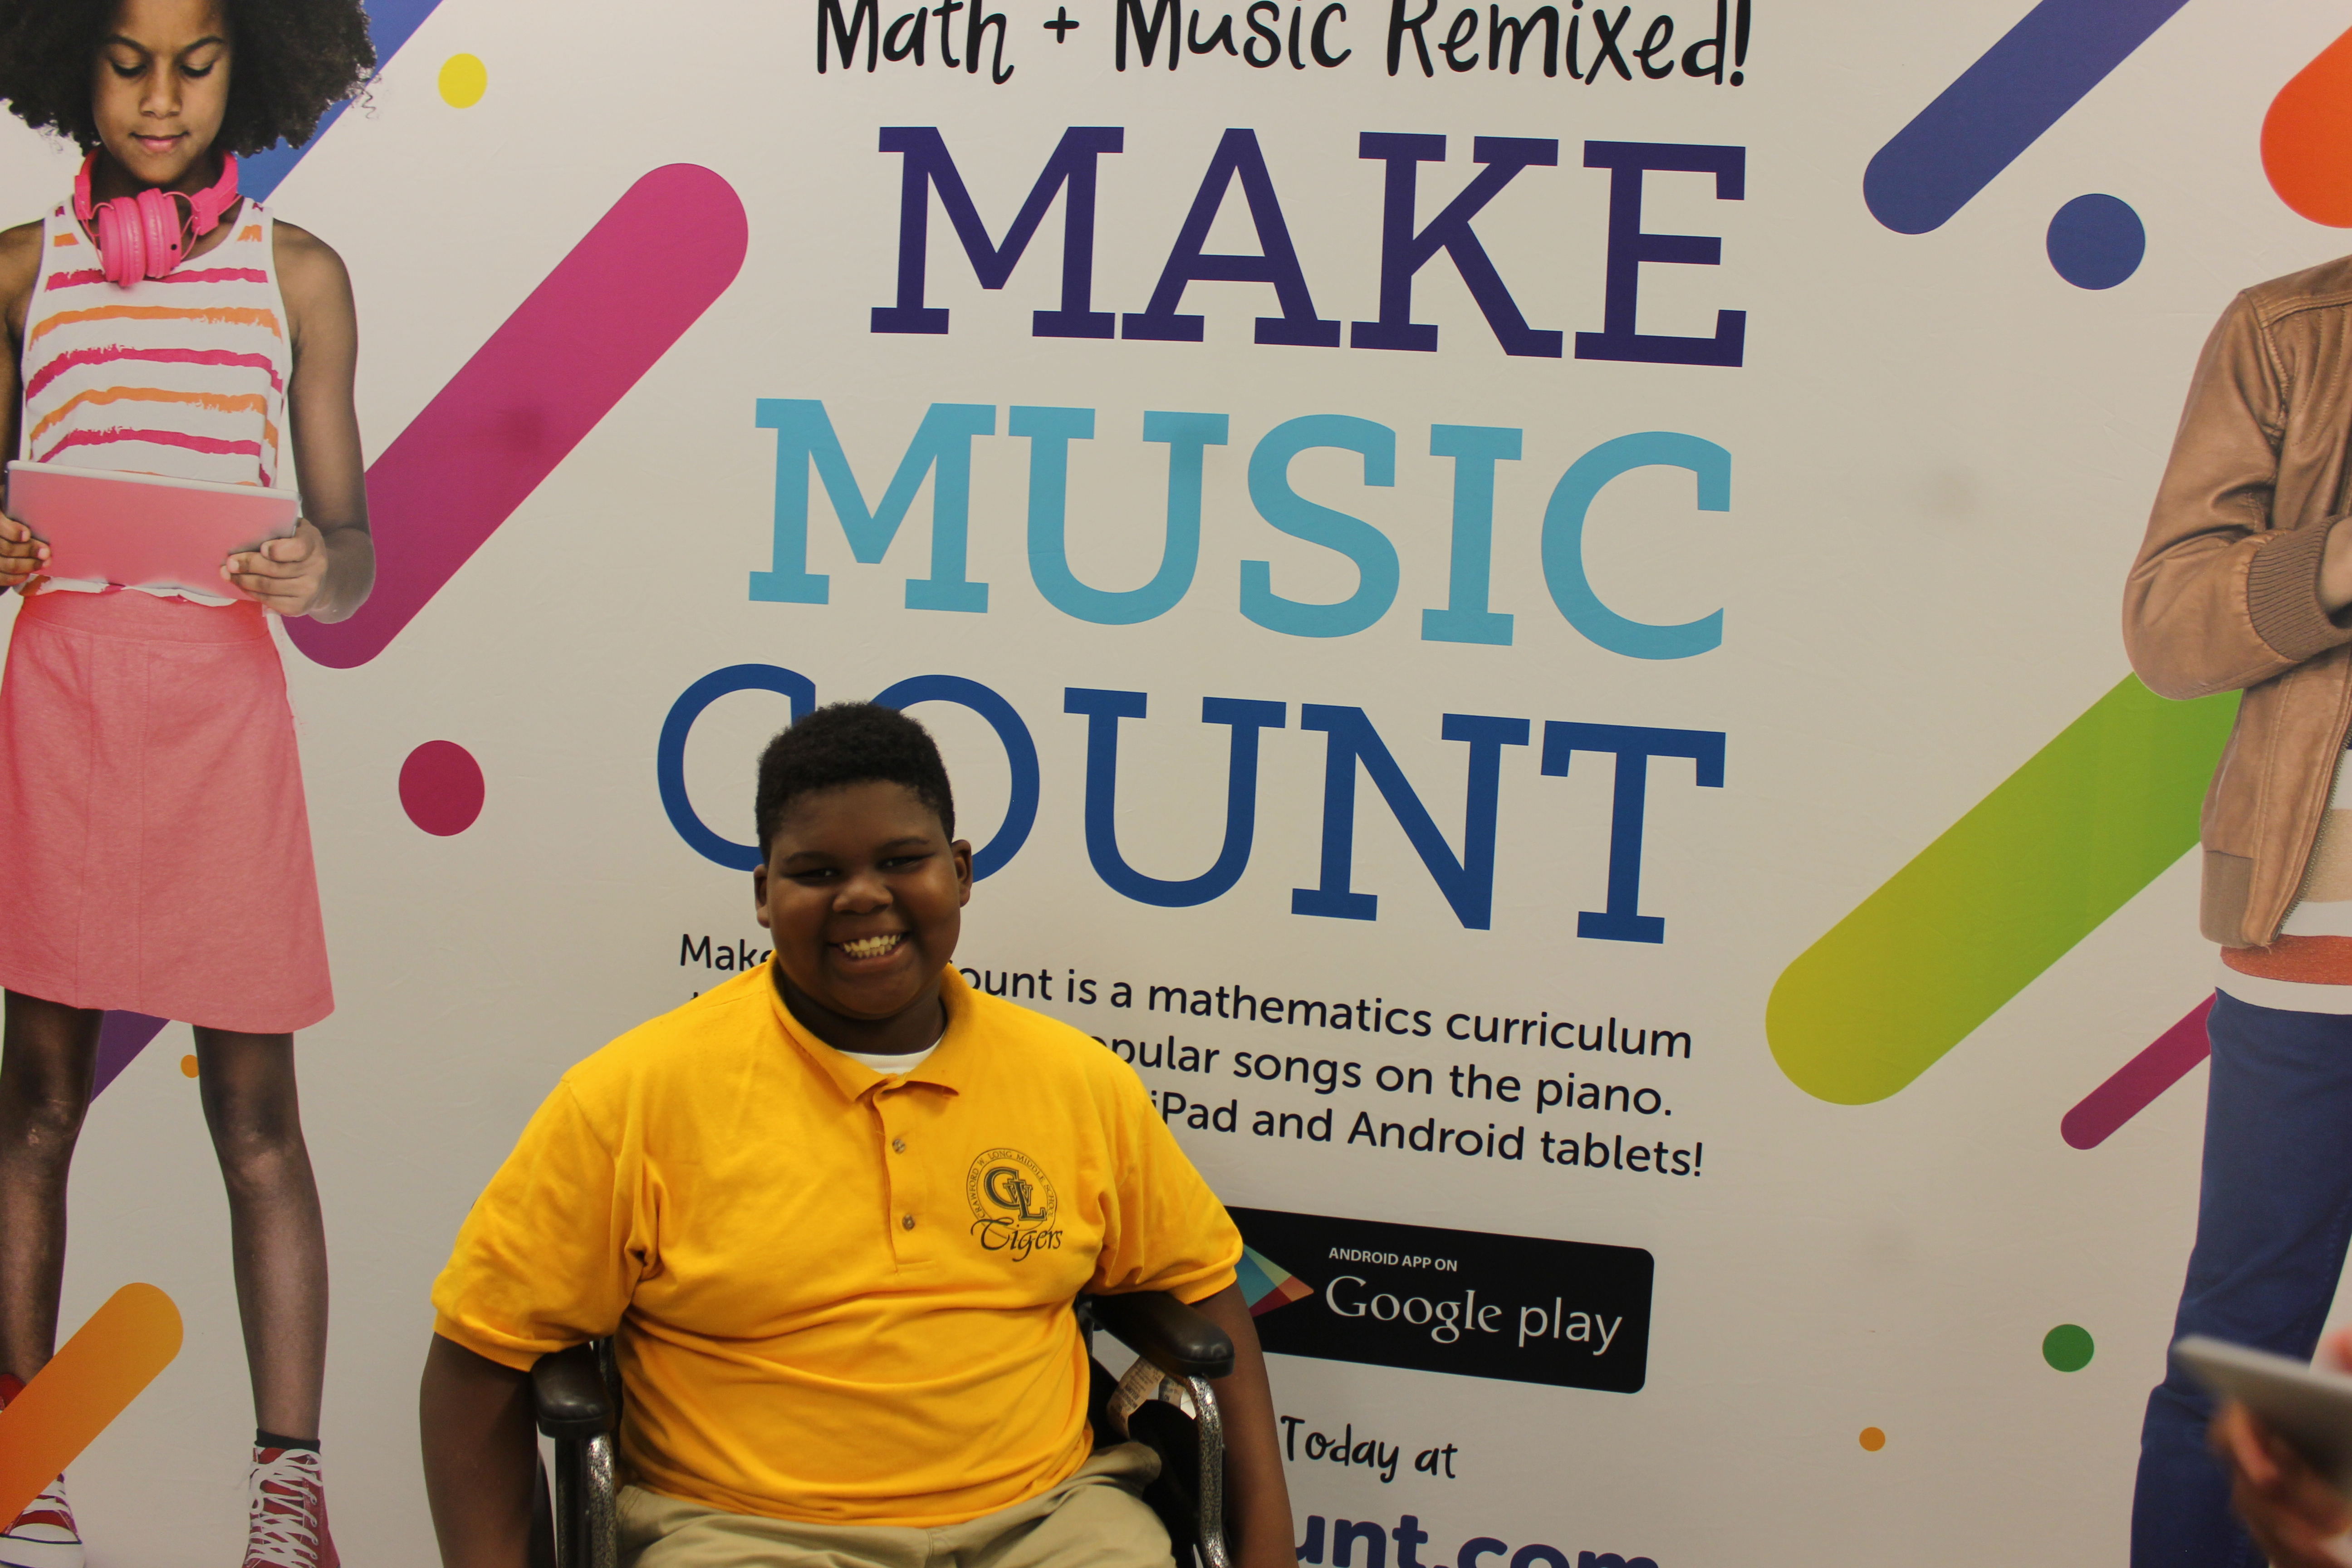 Make Music Count App Launches at C W  Long Middle School – Talk Up APS